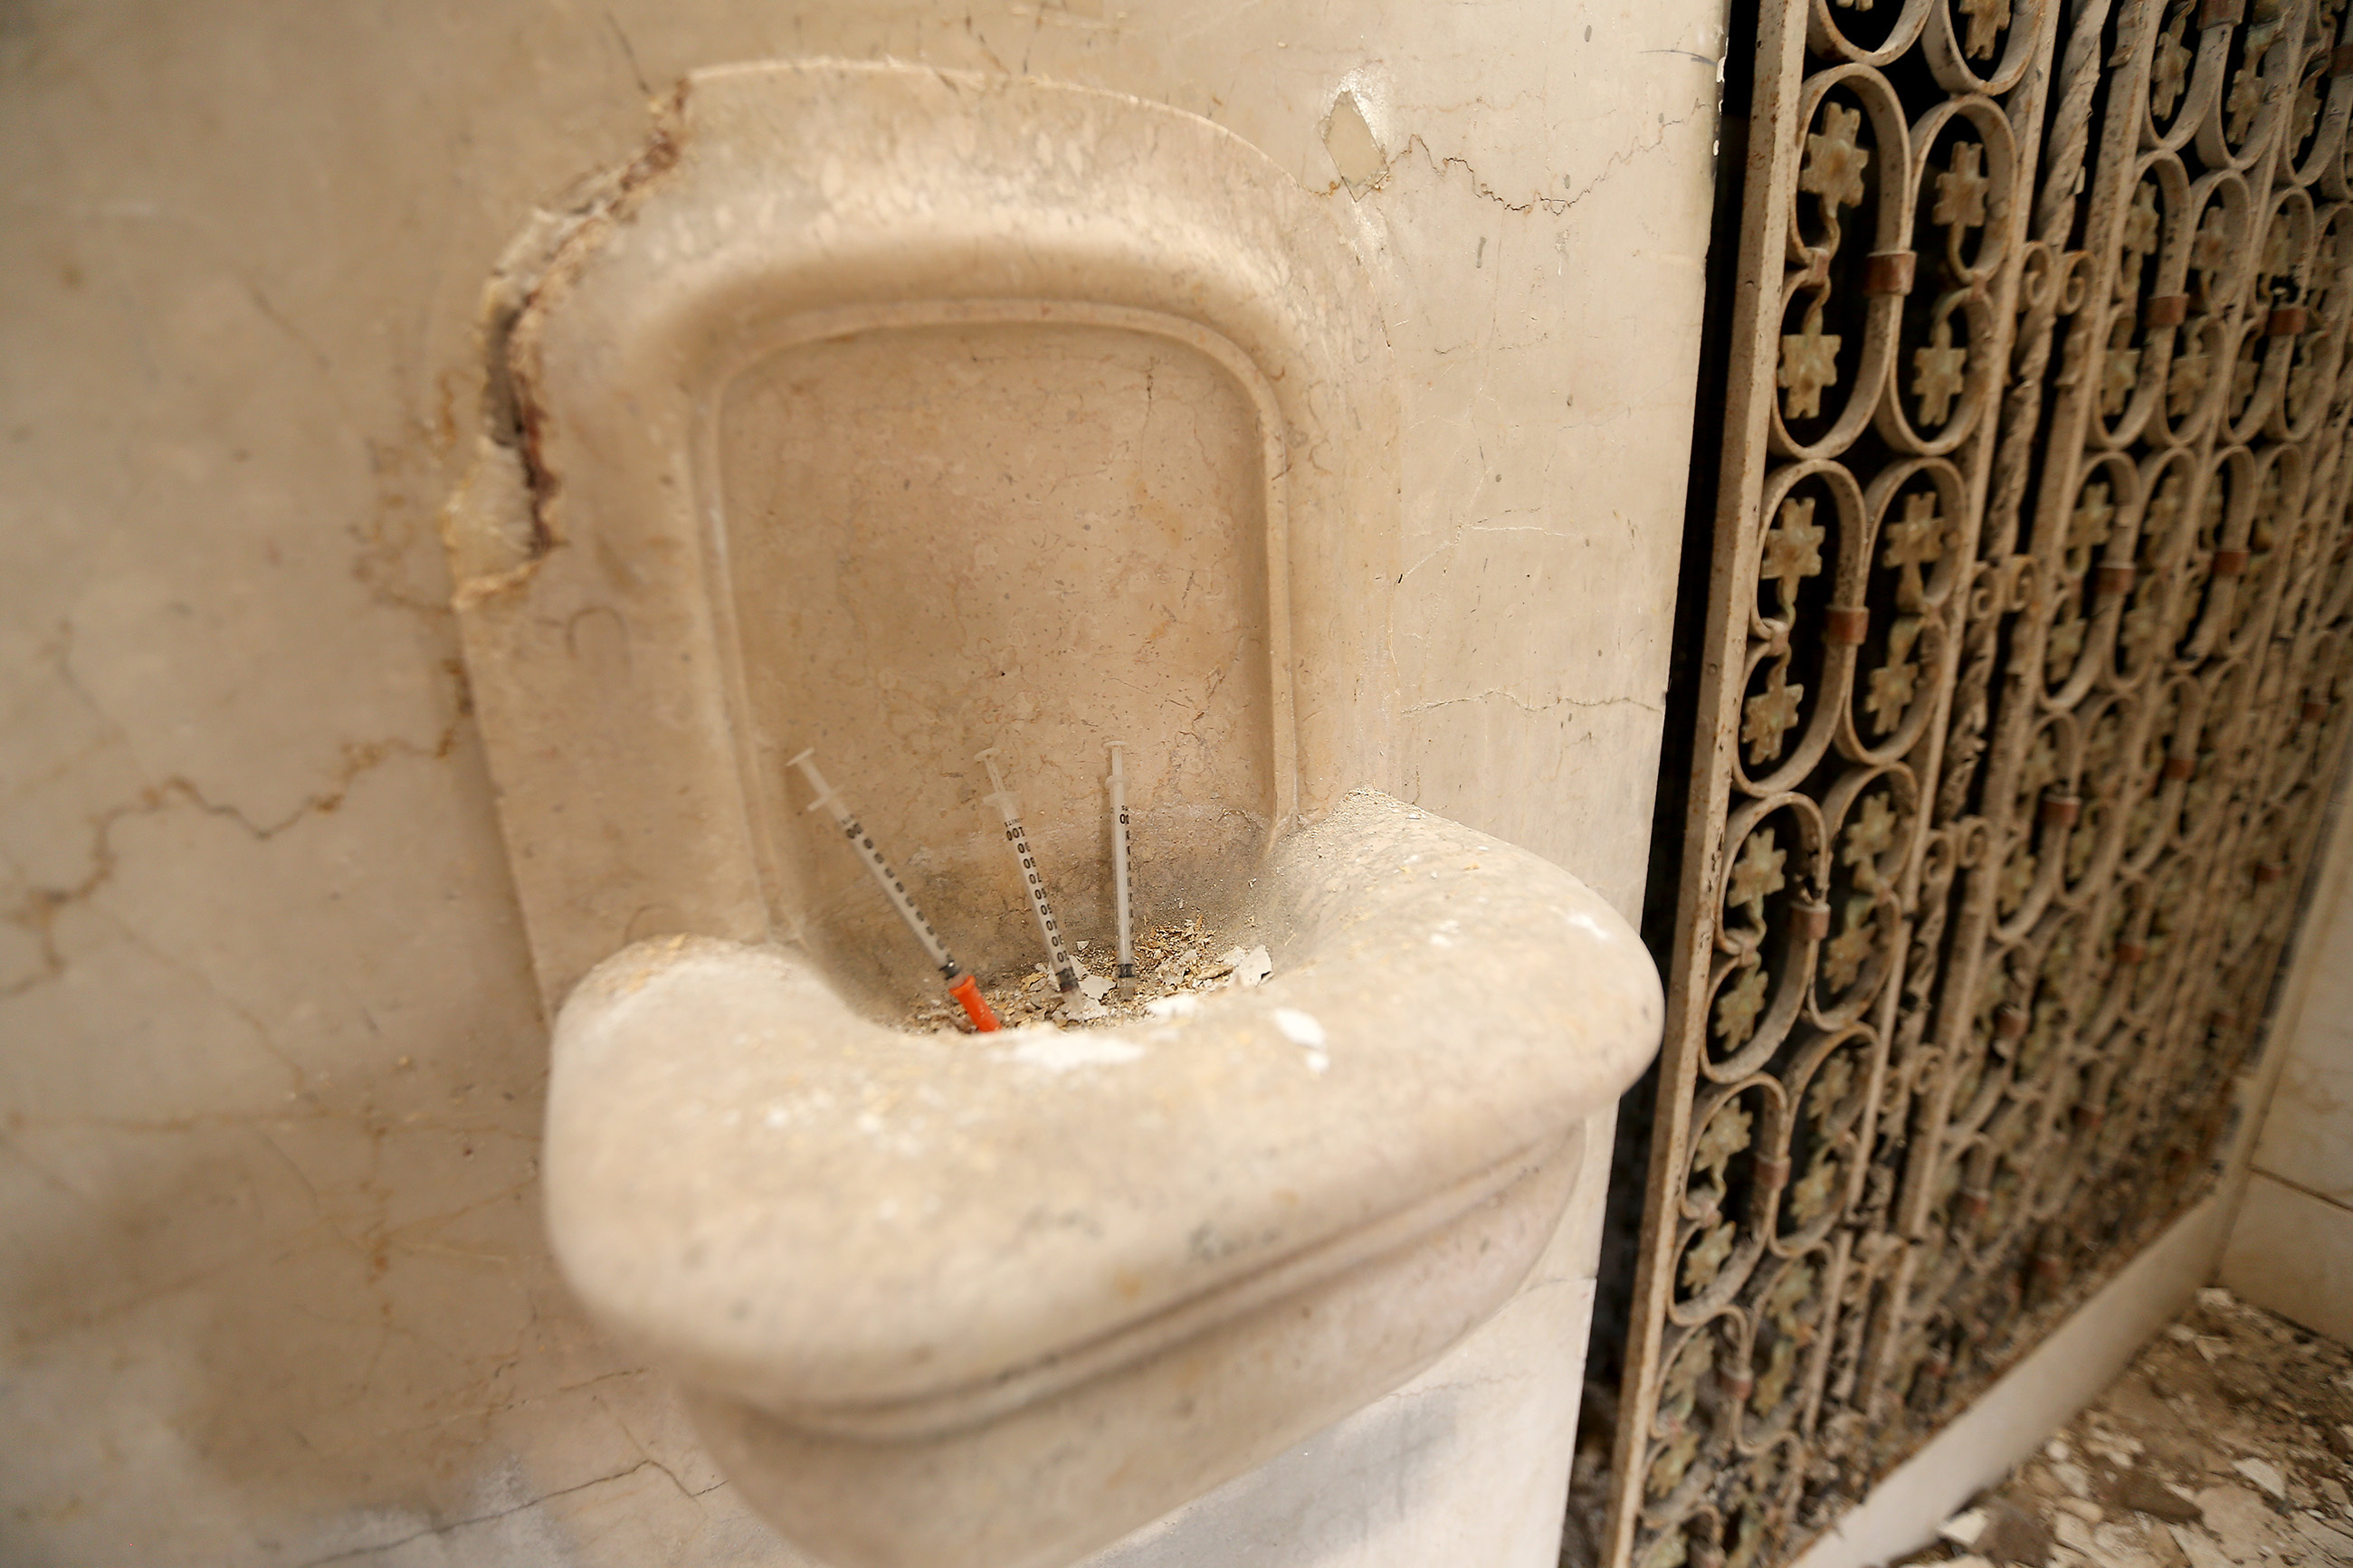 Three needles sit in what was a holy water basin inside the former Ascension of Our Lord church in Philadelphia, PA on July 5, 2017. DAVID MAIALETTI / Staff Photographer